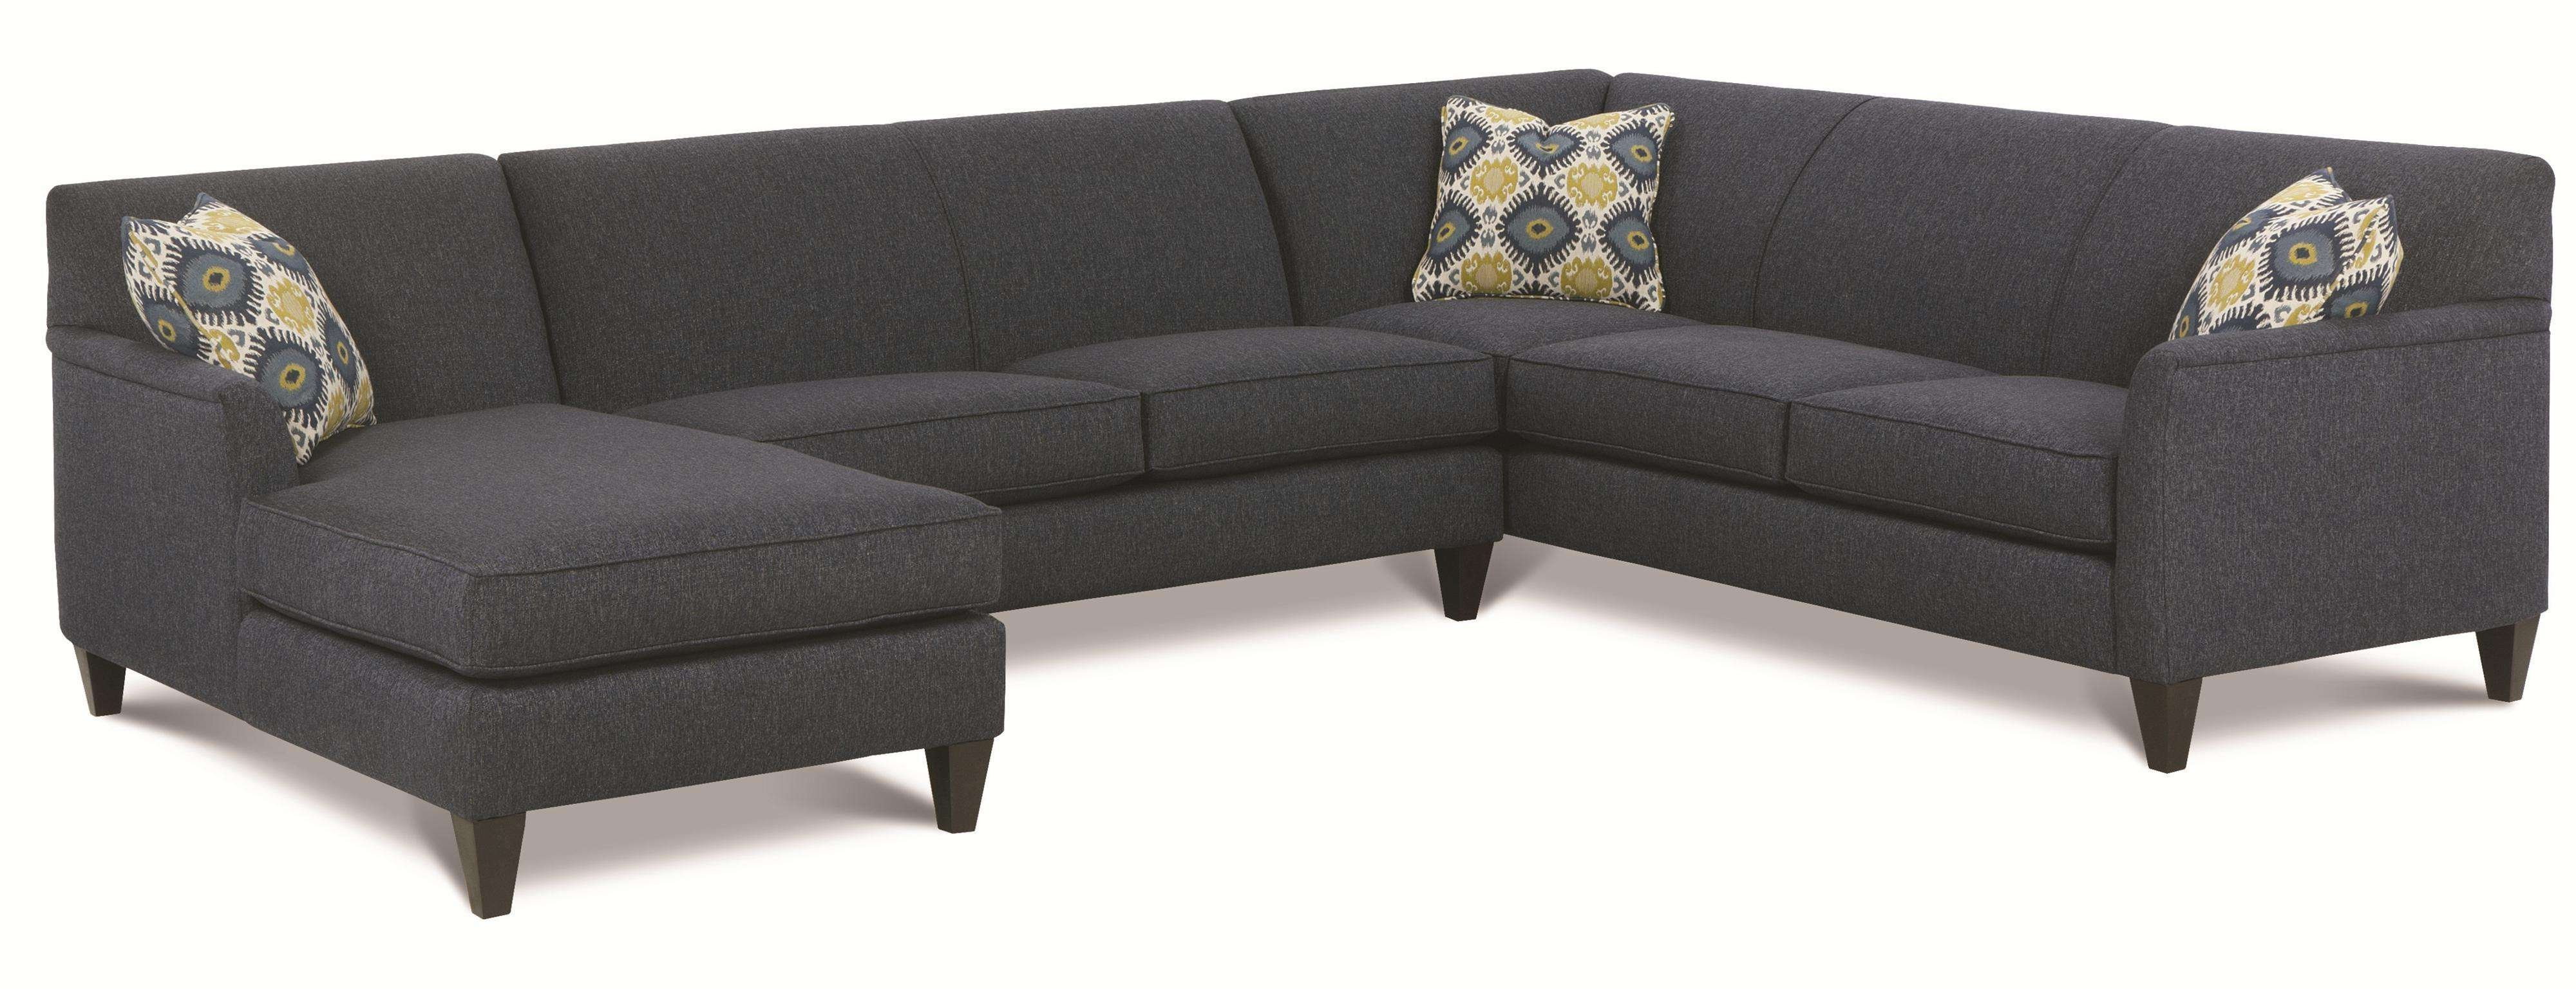 Russiandesignshow Intended For Aquarius Dark Grey 2 Piece Sectionals With Laf Chaise (View 16 of 20)